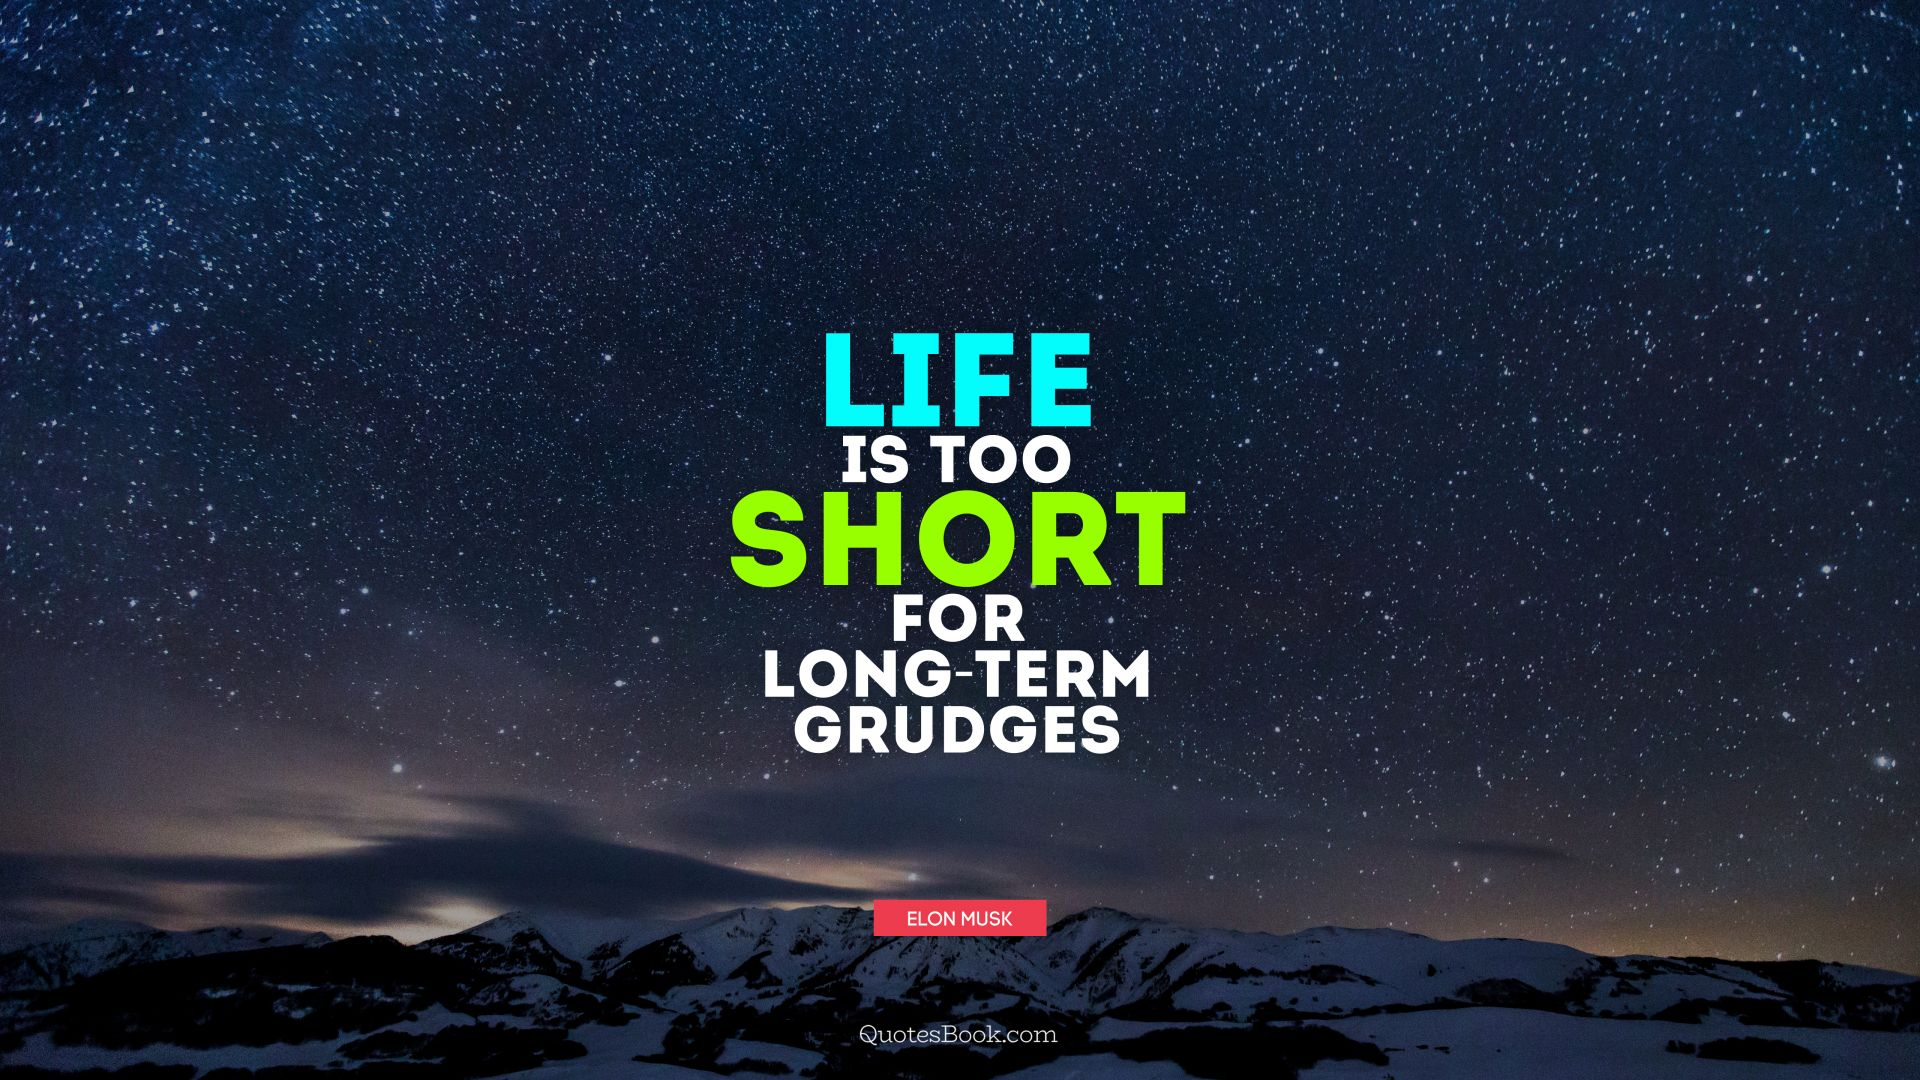 Life is too short for long-term grudges. - Quote by Elon Musk